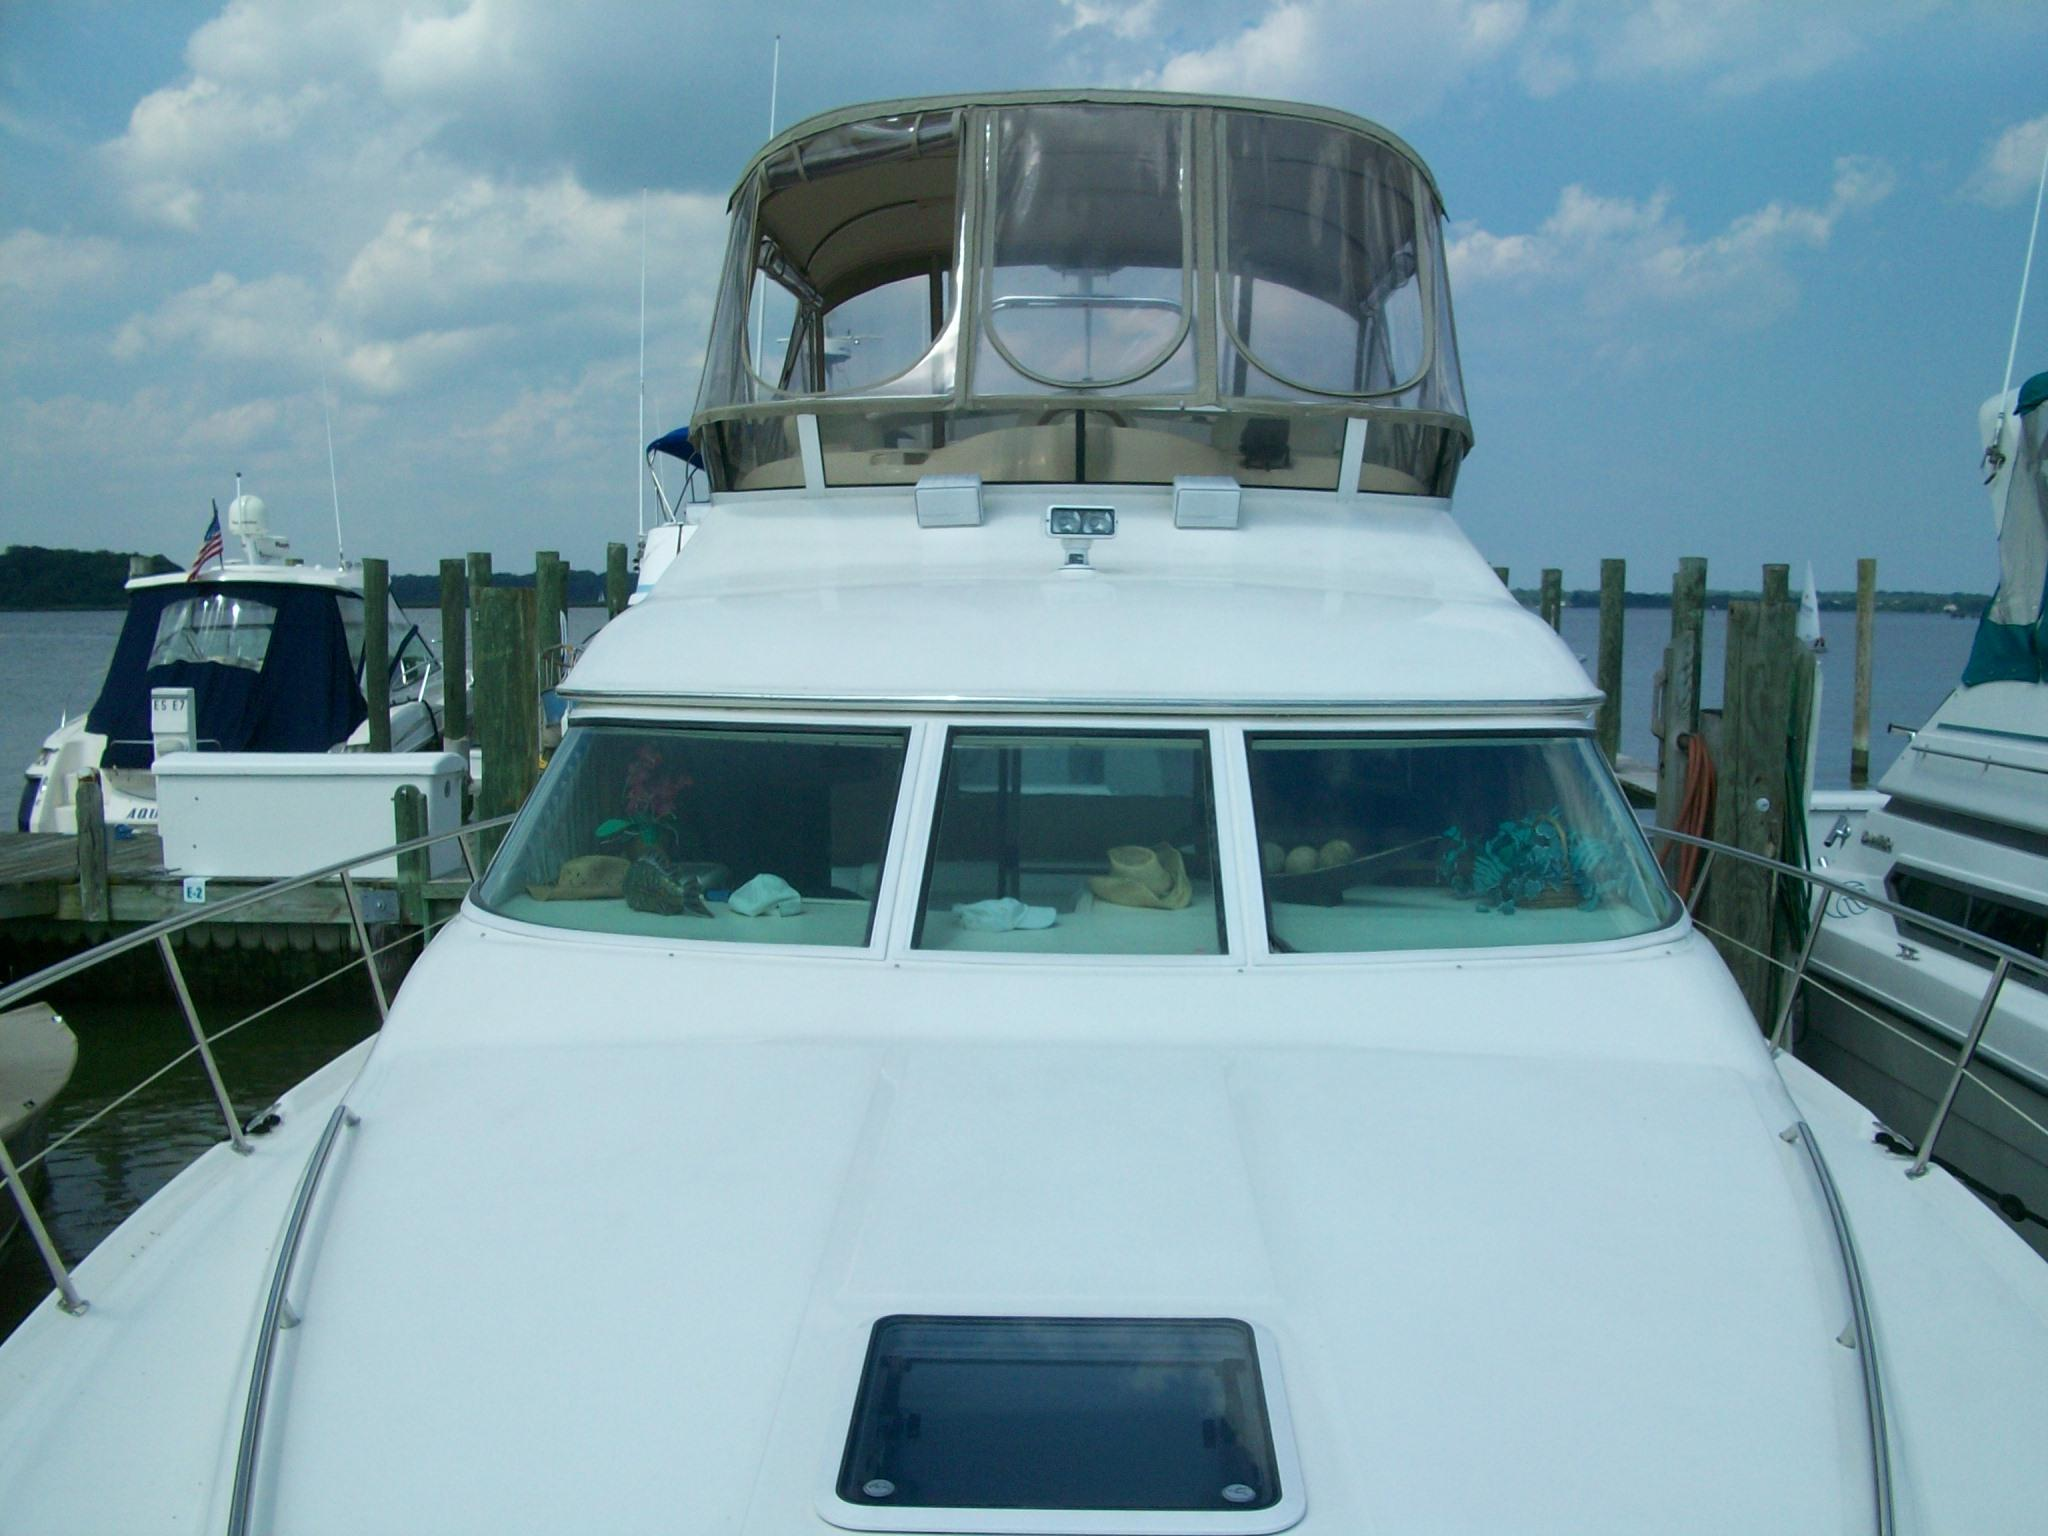 4428952_20130805112018309_1_XLARGE&w=924&h=693&t=1499284819000 2000 sea ray 400 sedan bridge power boat for sale www yachtworld com  at crackthecode.co